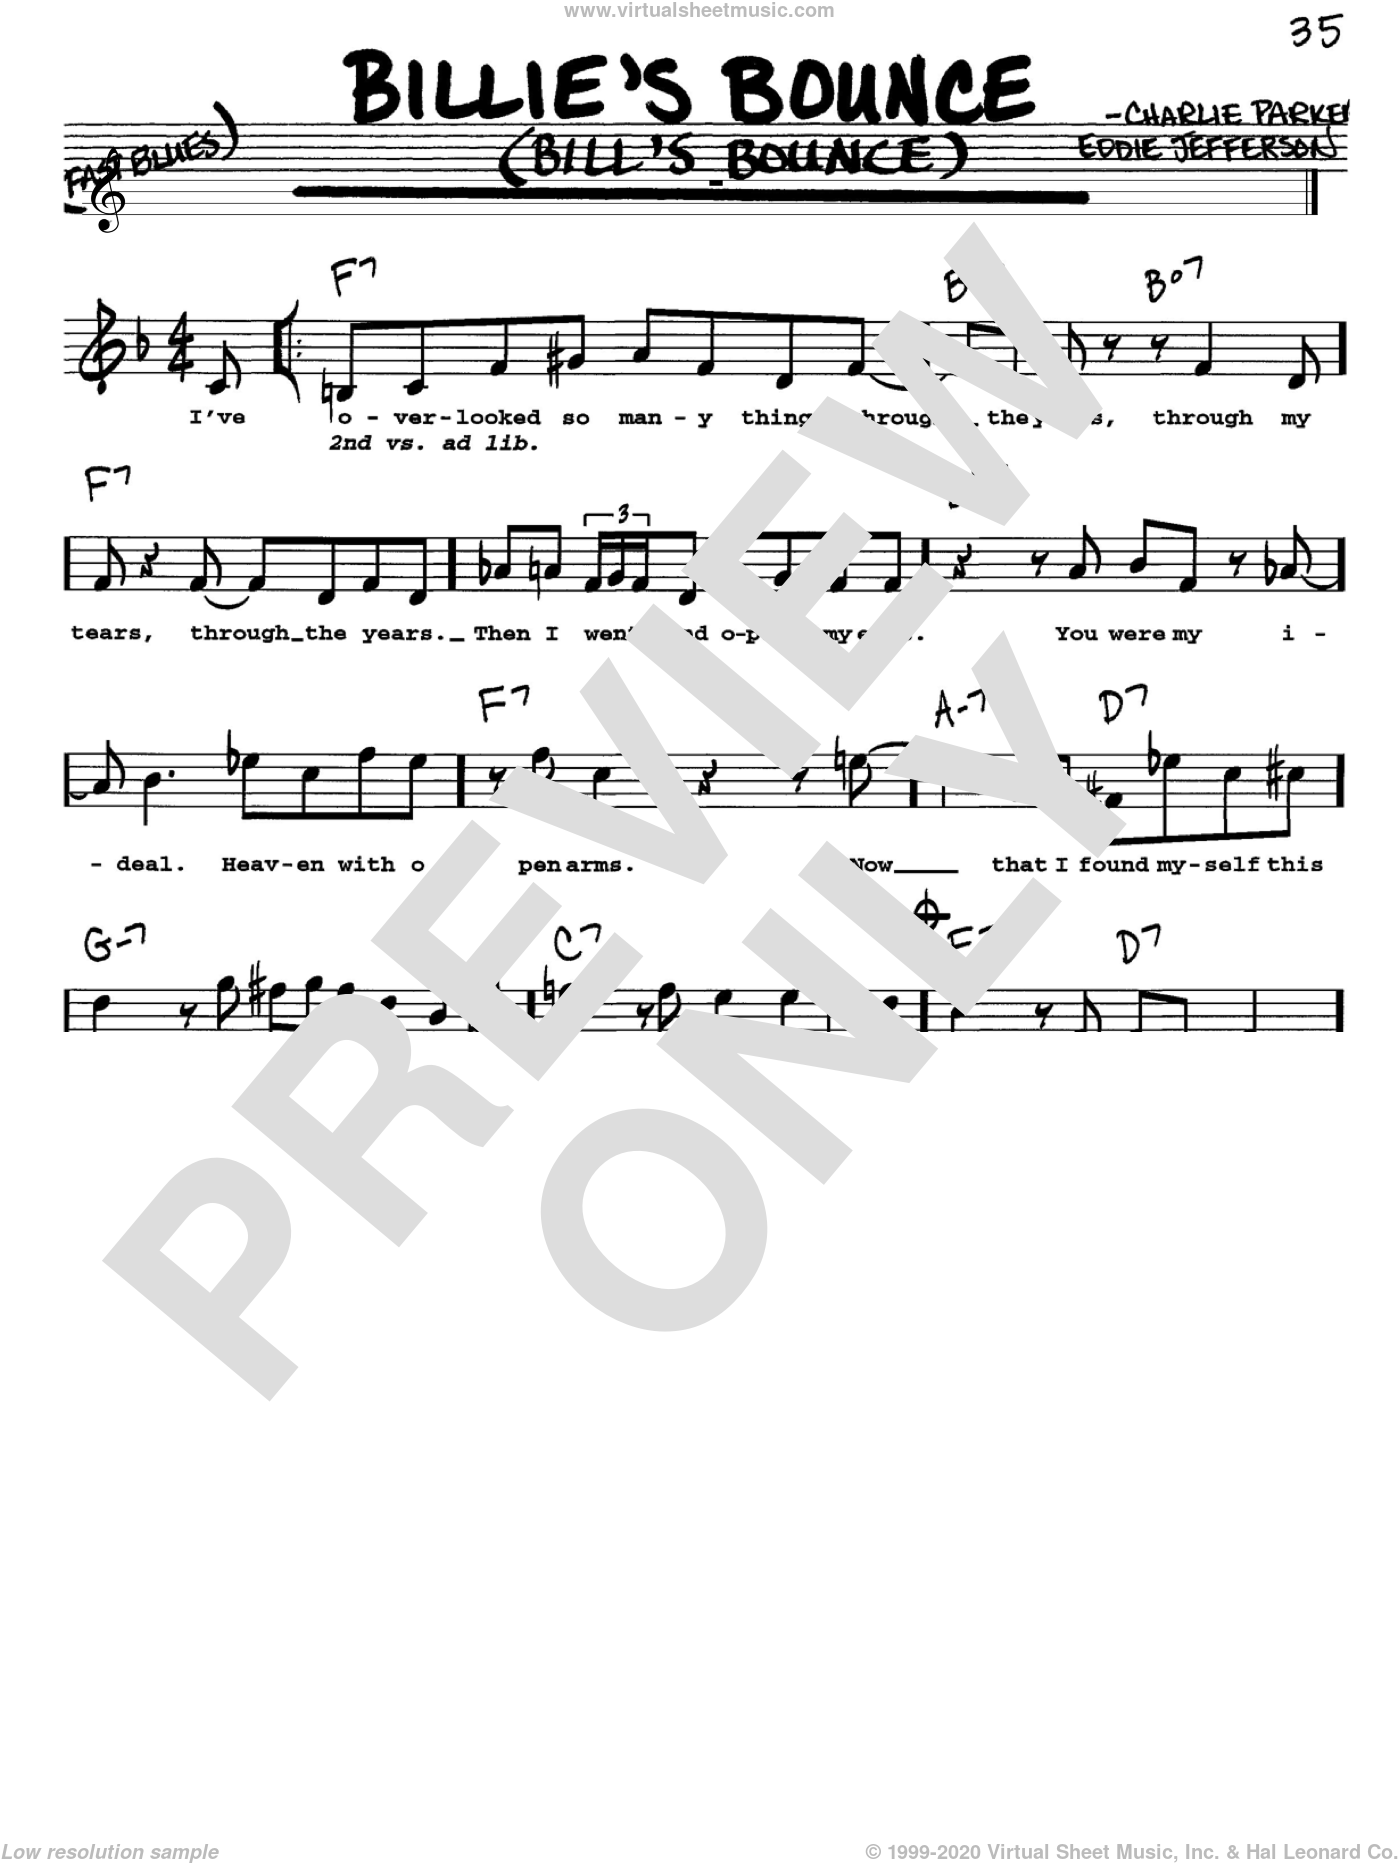 Billie's Bounce (Bill's Bounce) sheet music for voice and other instruments (Vocal Volume 1) by Charlie Parker. Score Image Preview.